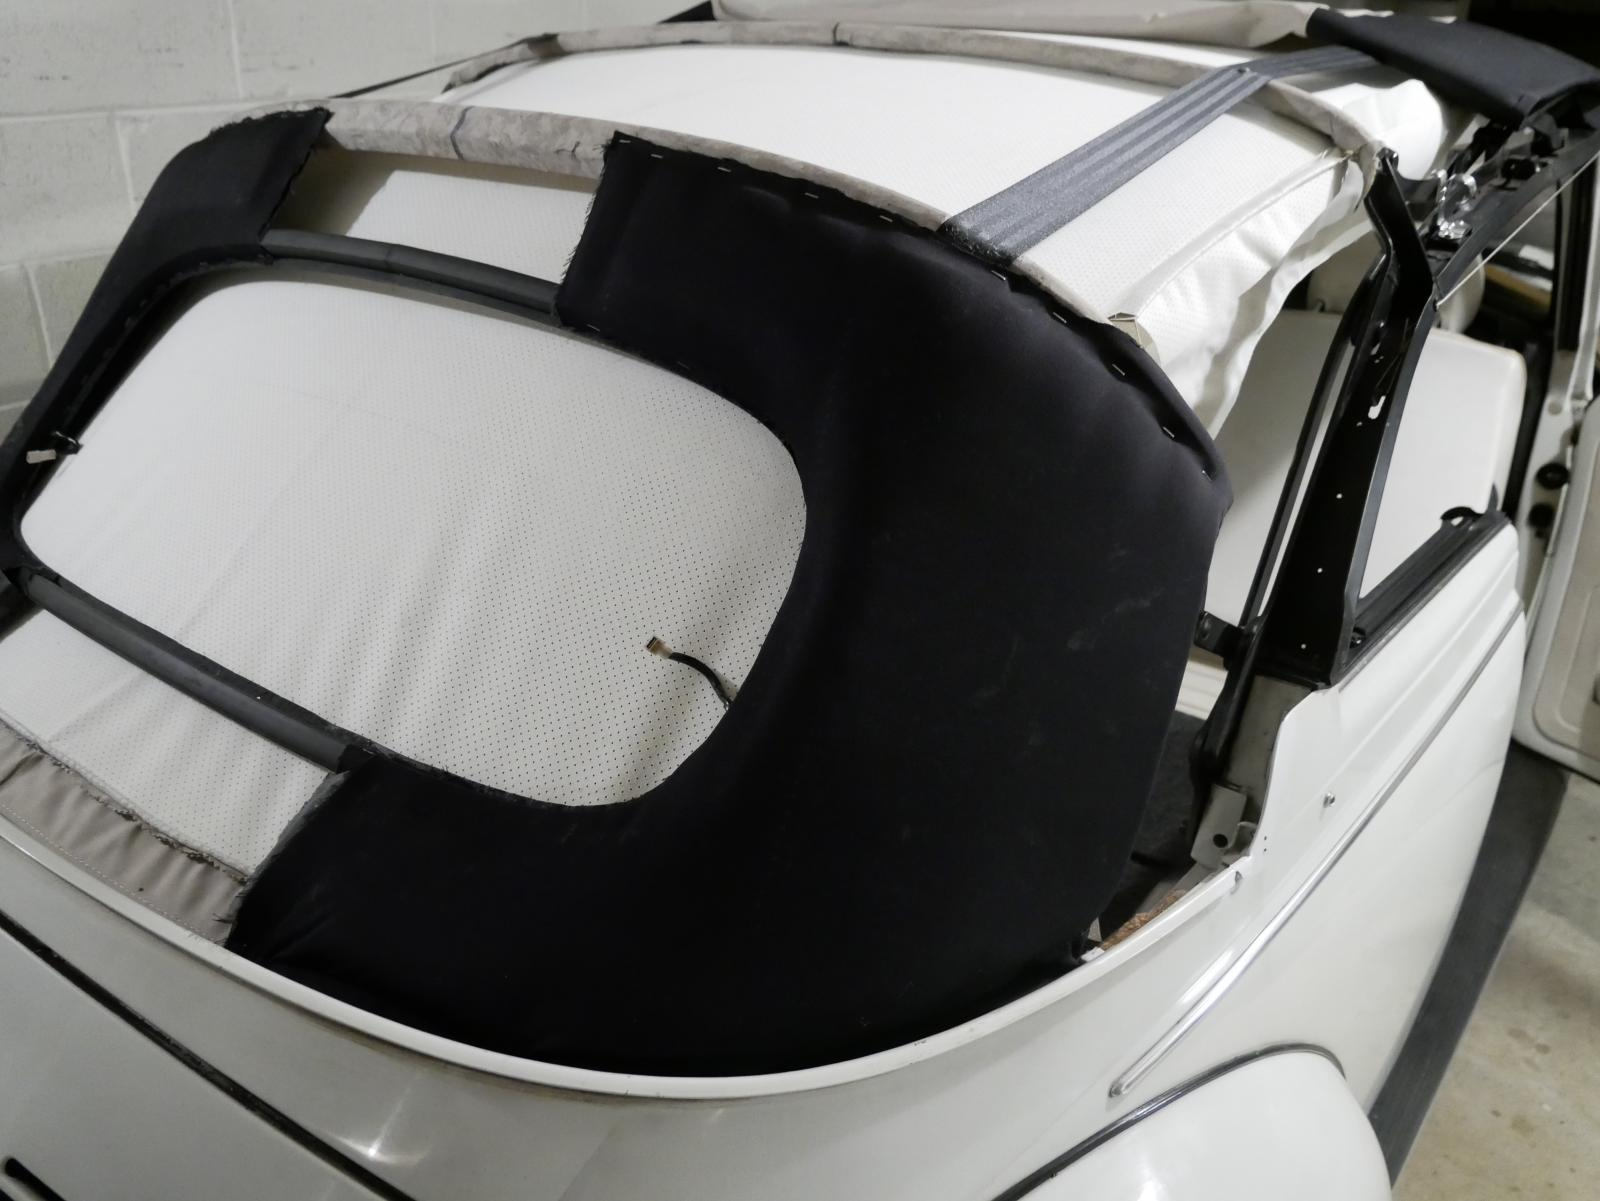 '79 Super Beetle convertible top quarter pad install